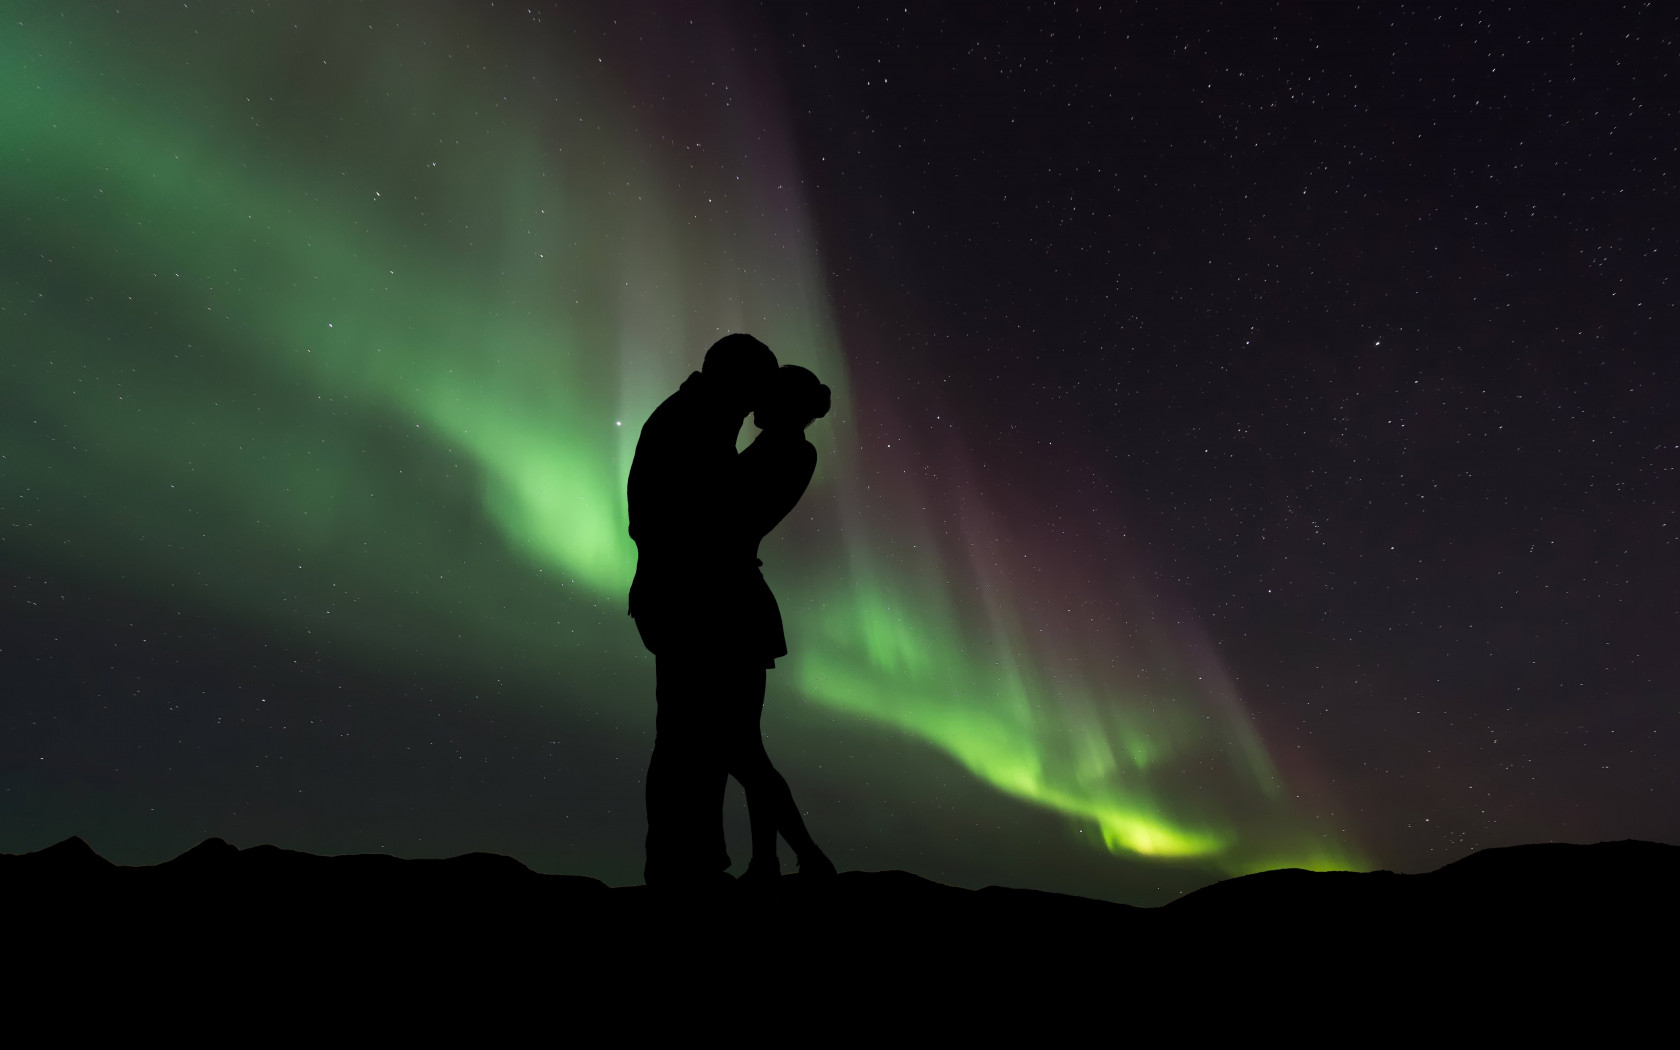 Couple in love under the Northern Lights wallpaper 1680x1050